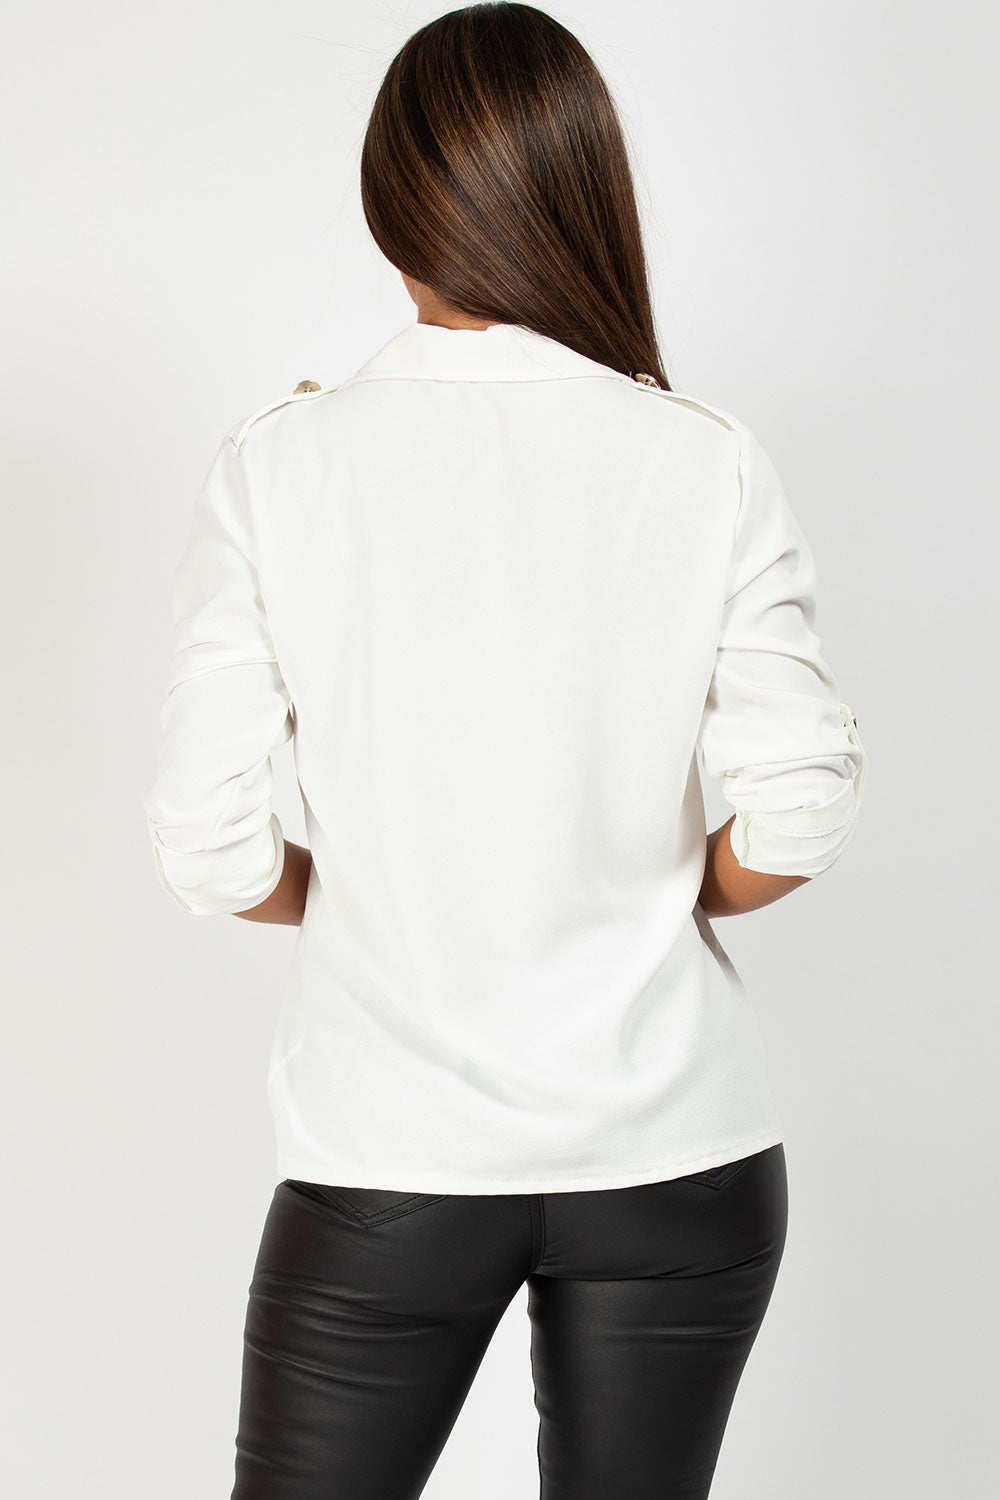 womens white shirt with gold button detail